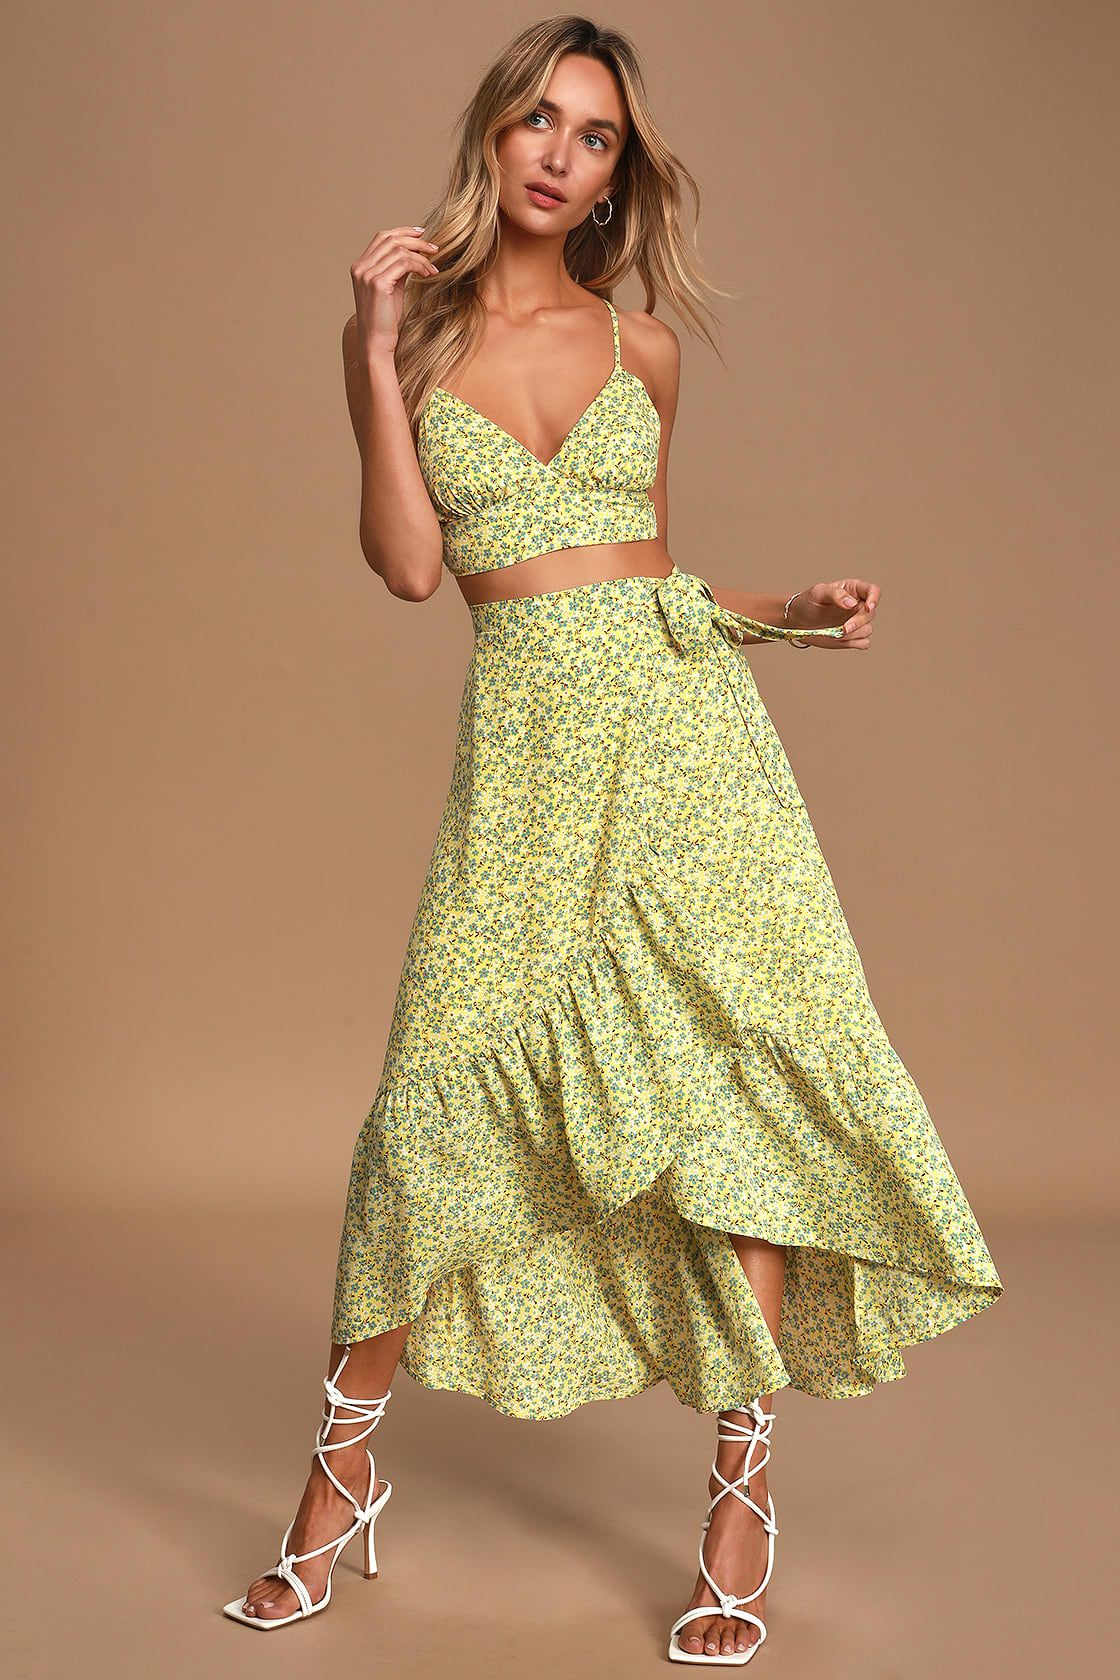 Believe In Me Yellow Floral Print Two Piece Midi Dress Two Piece Dress Casual Piece Dress Casual Dresses [ 1680 x 1120 Pixel ]